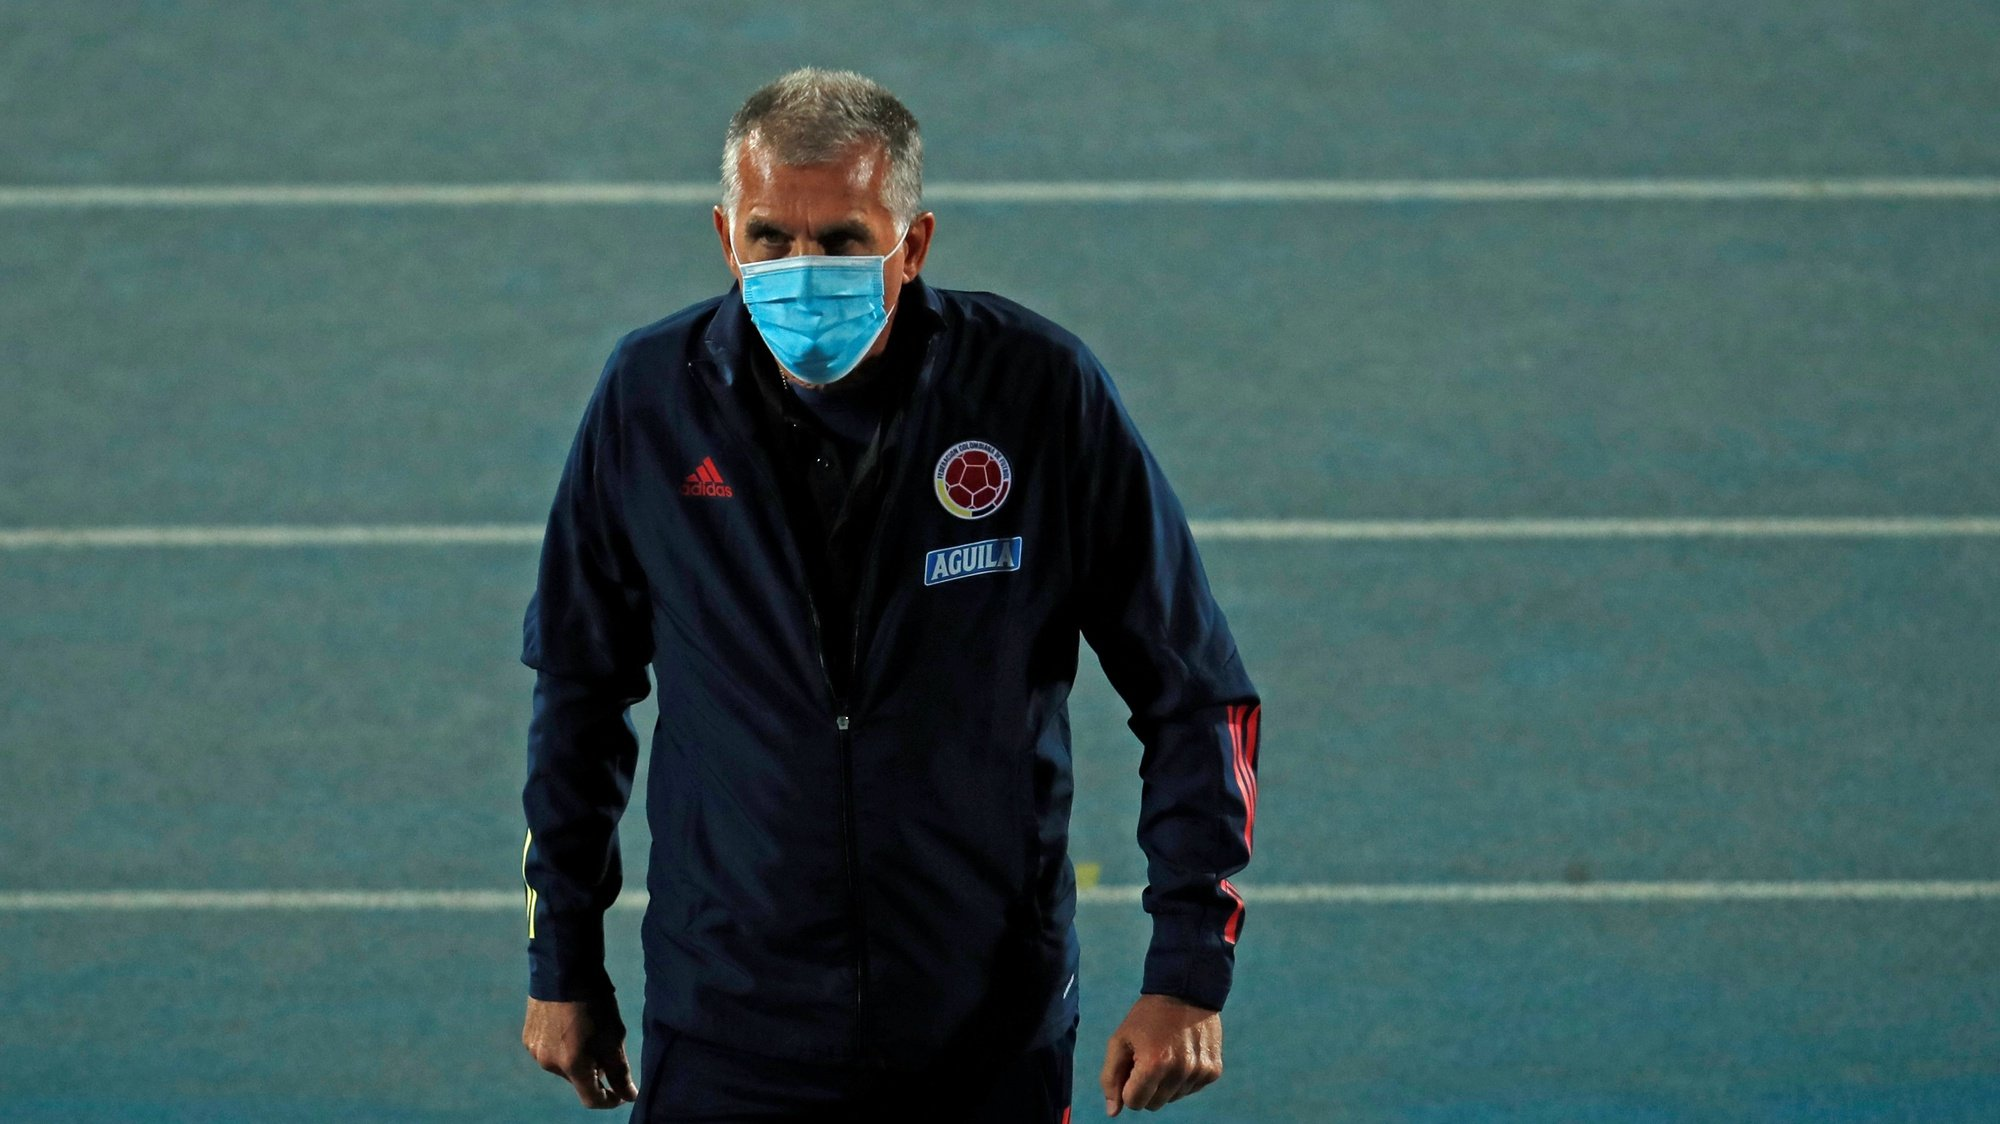 epa08742734 Colombia's head coach, Portuguese Carlos Queiroz, during the South American qualifier soccer match for the 2022 FIFA World Cup Qatar between Chile and Colombia, at the National stadium, in Santiago, Chile, 13 October 2020.  EPA/Alberto Valdes / POOL